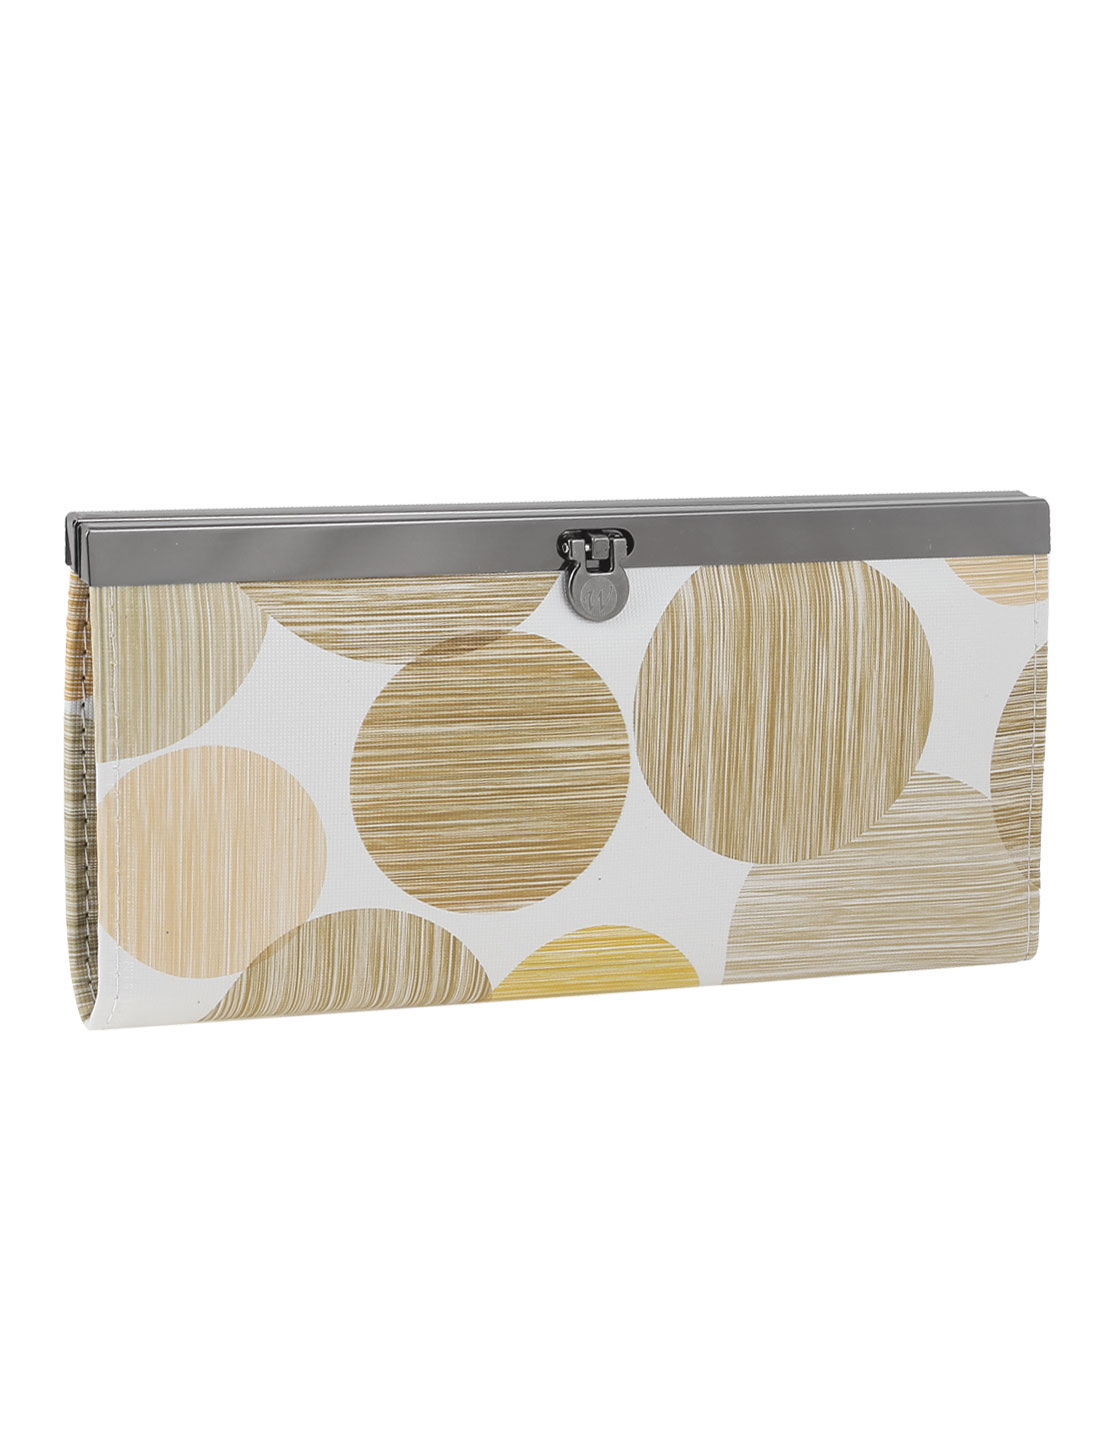 Flip Lock Faux Leather Textured Circles Pattern Purse Wallet Beige White